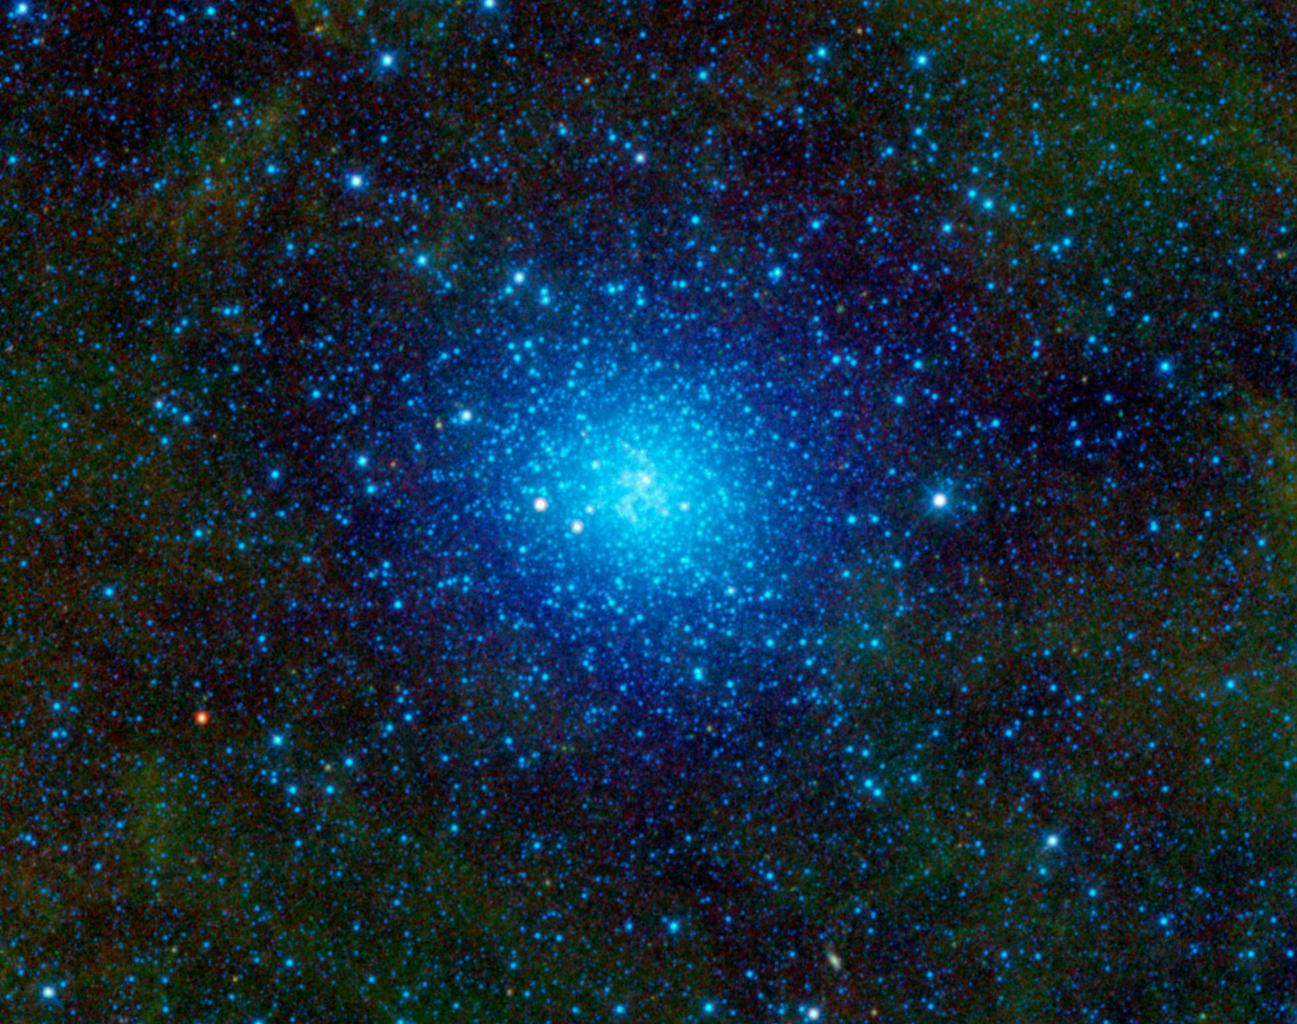 NASA's Wide-field Infrared Survey Explorer has captured a favorite observing target of amateur astronomers, Omega Centauri. This celestial cluster of stars can be found in the constellation Centaurus.